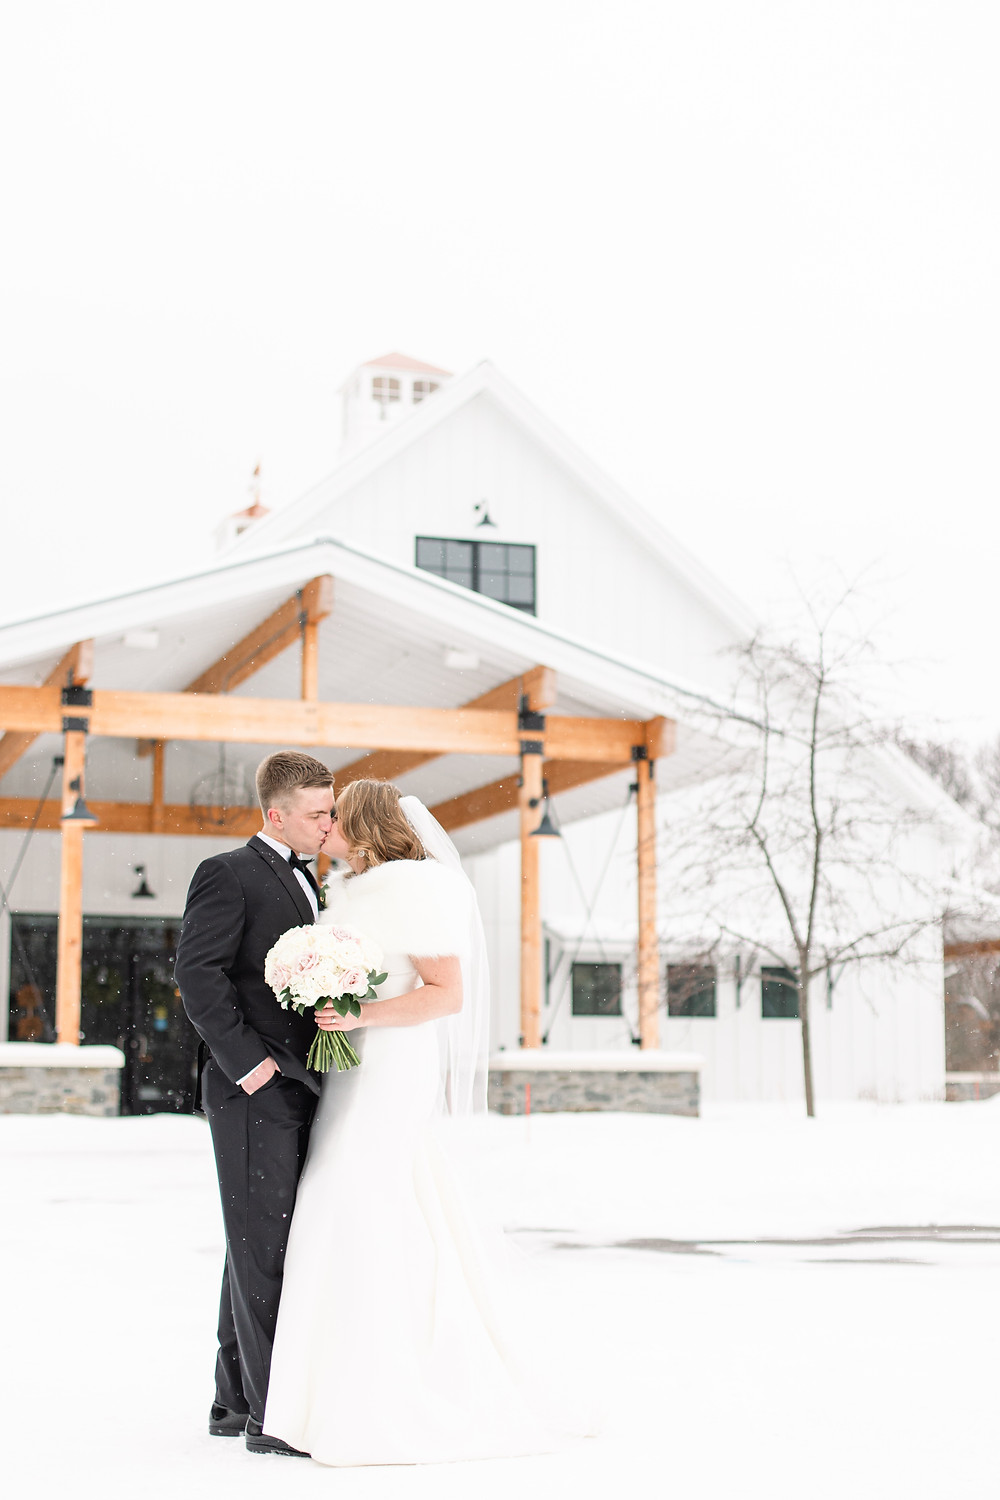 Josh and Andrea wedding photography husband and wife photographer team michigan venue Bay Pointe Woods shelbyville snow winter wedding bride and groom kissing